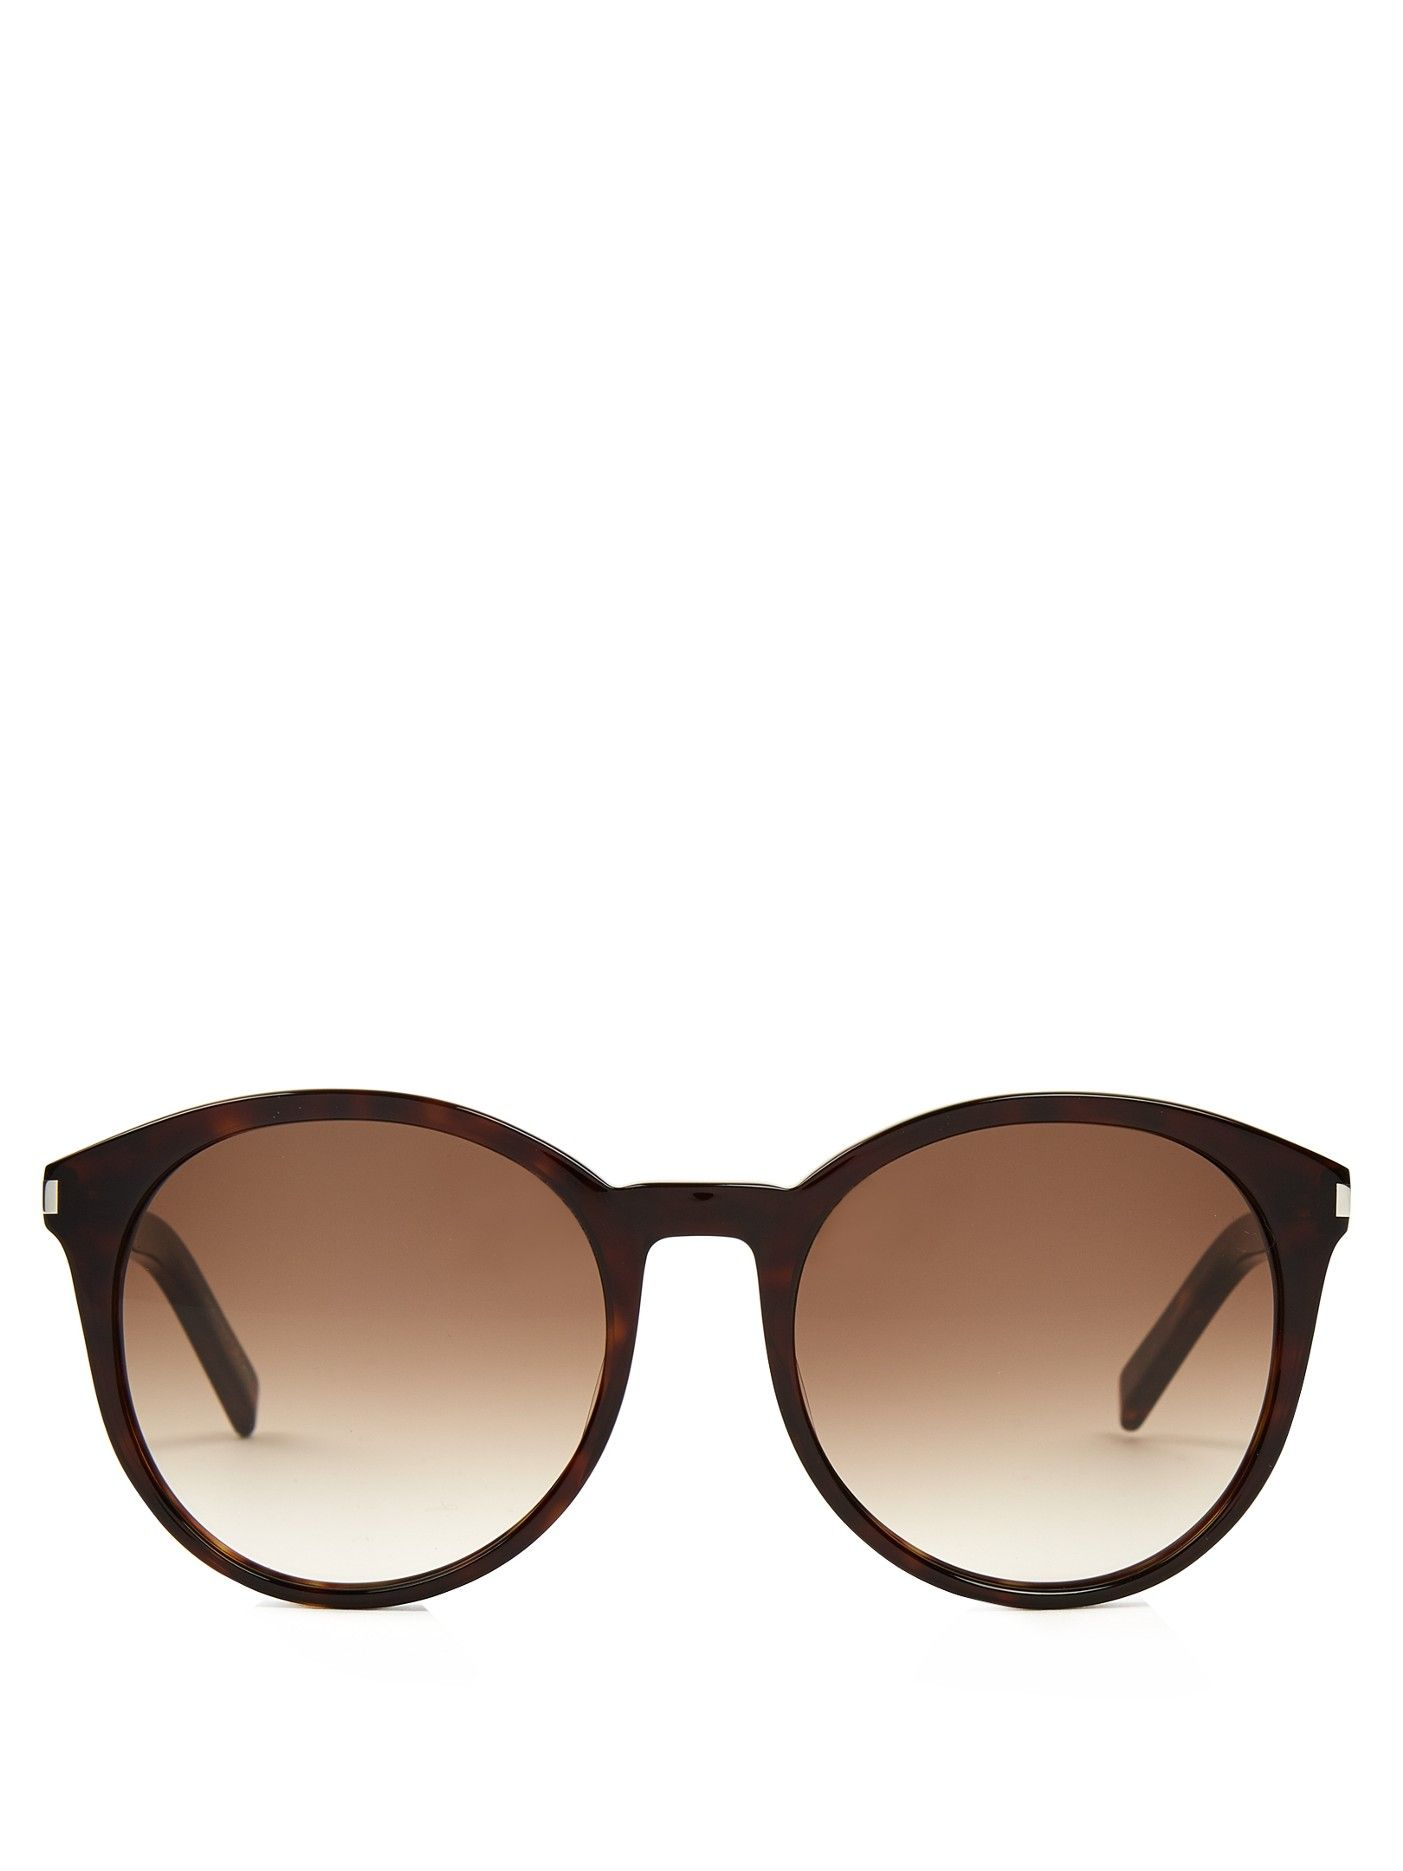 Oversized roundframe acetate sunglasses Saint Laurent